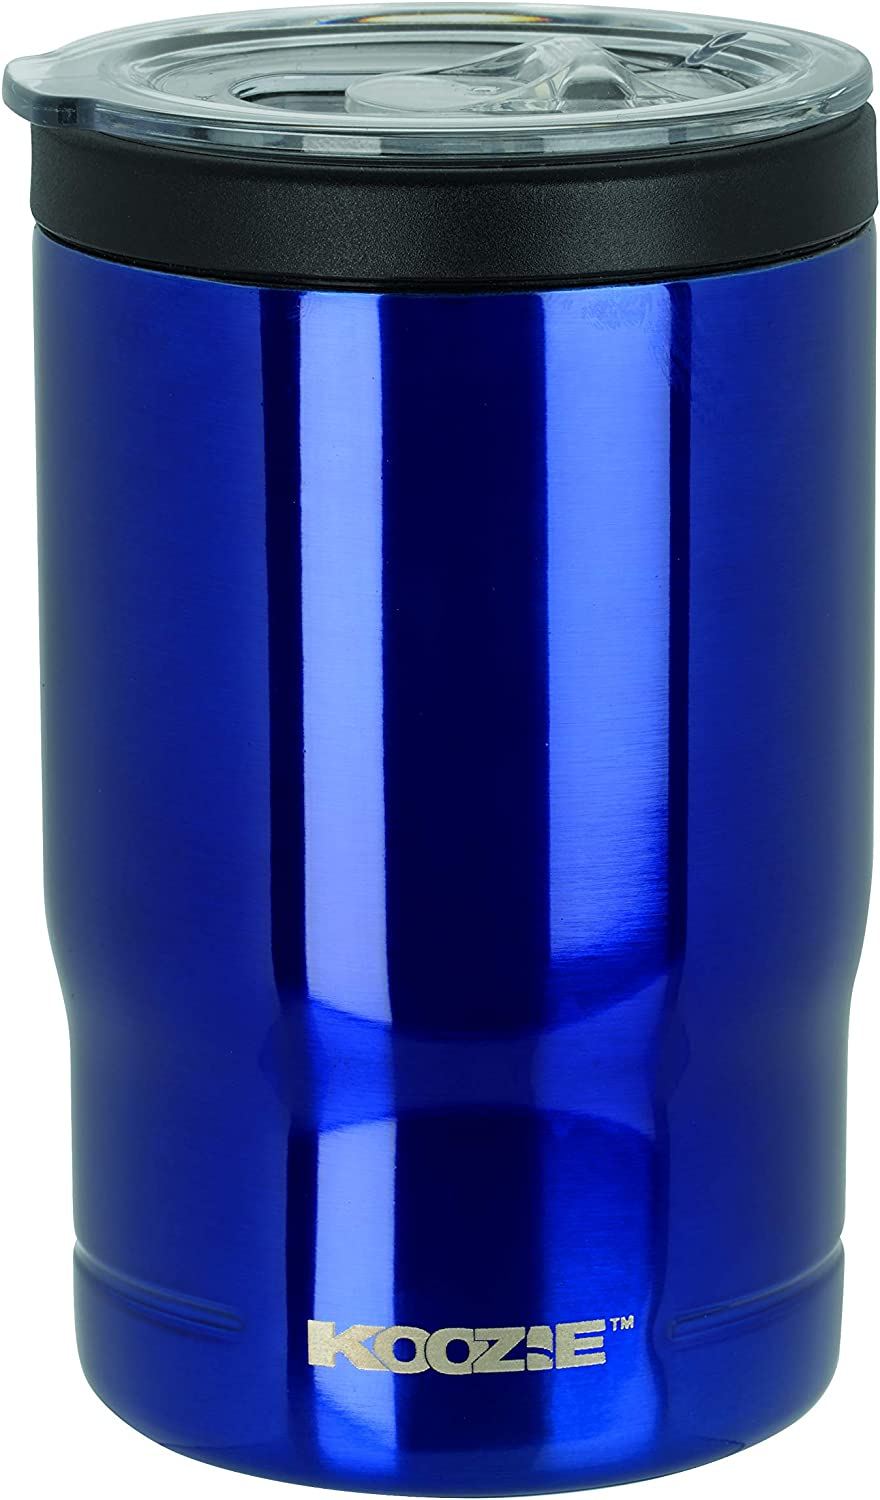 Koozie Stainless Steel Double Wall Vacuum Insulated Triple Can Cooler, Bottle or Tumbler - 12 oz. (Royal)